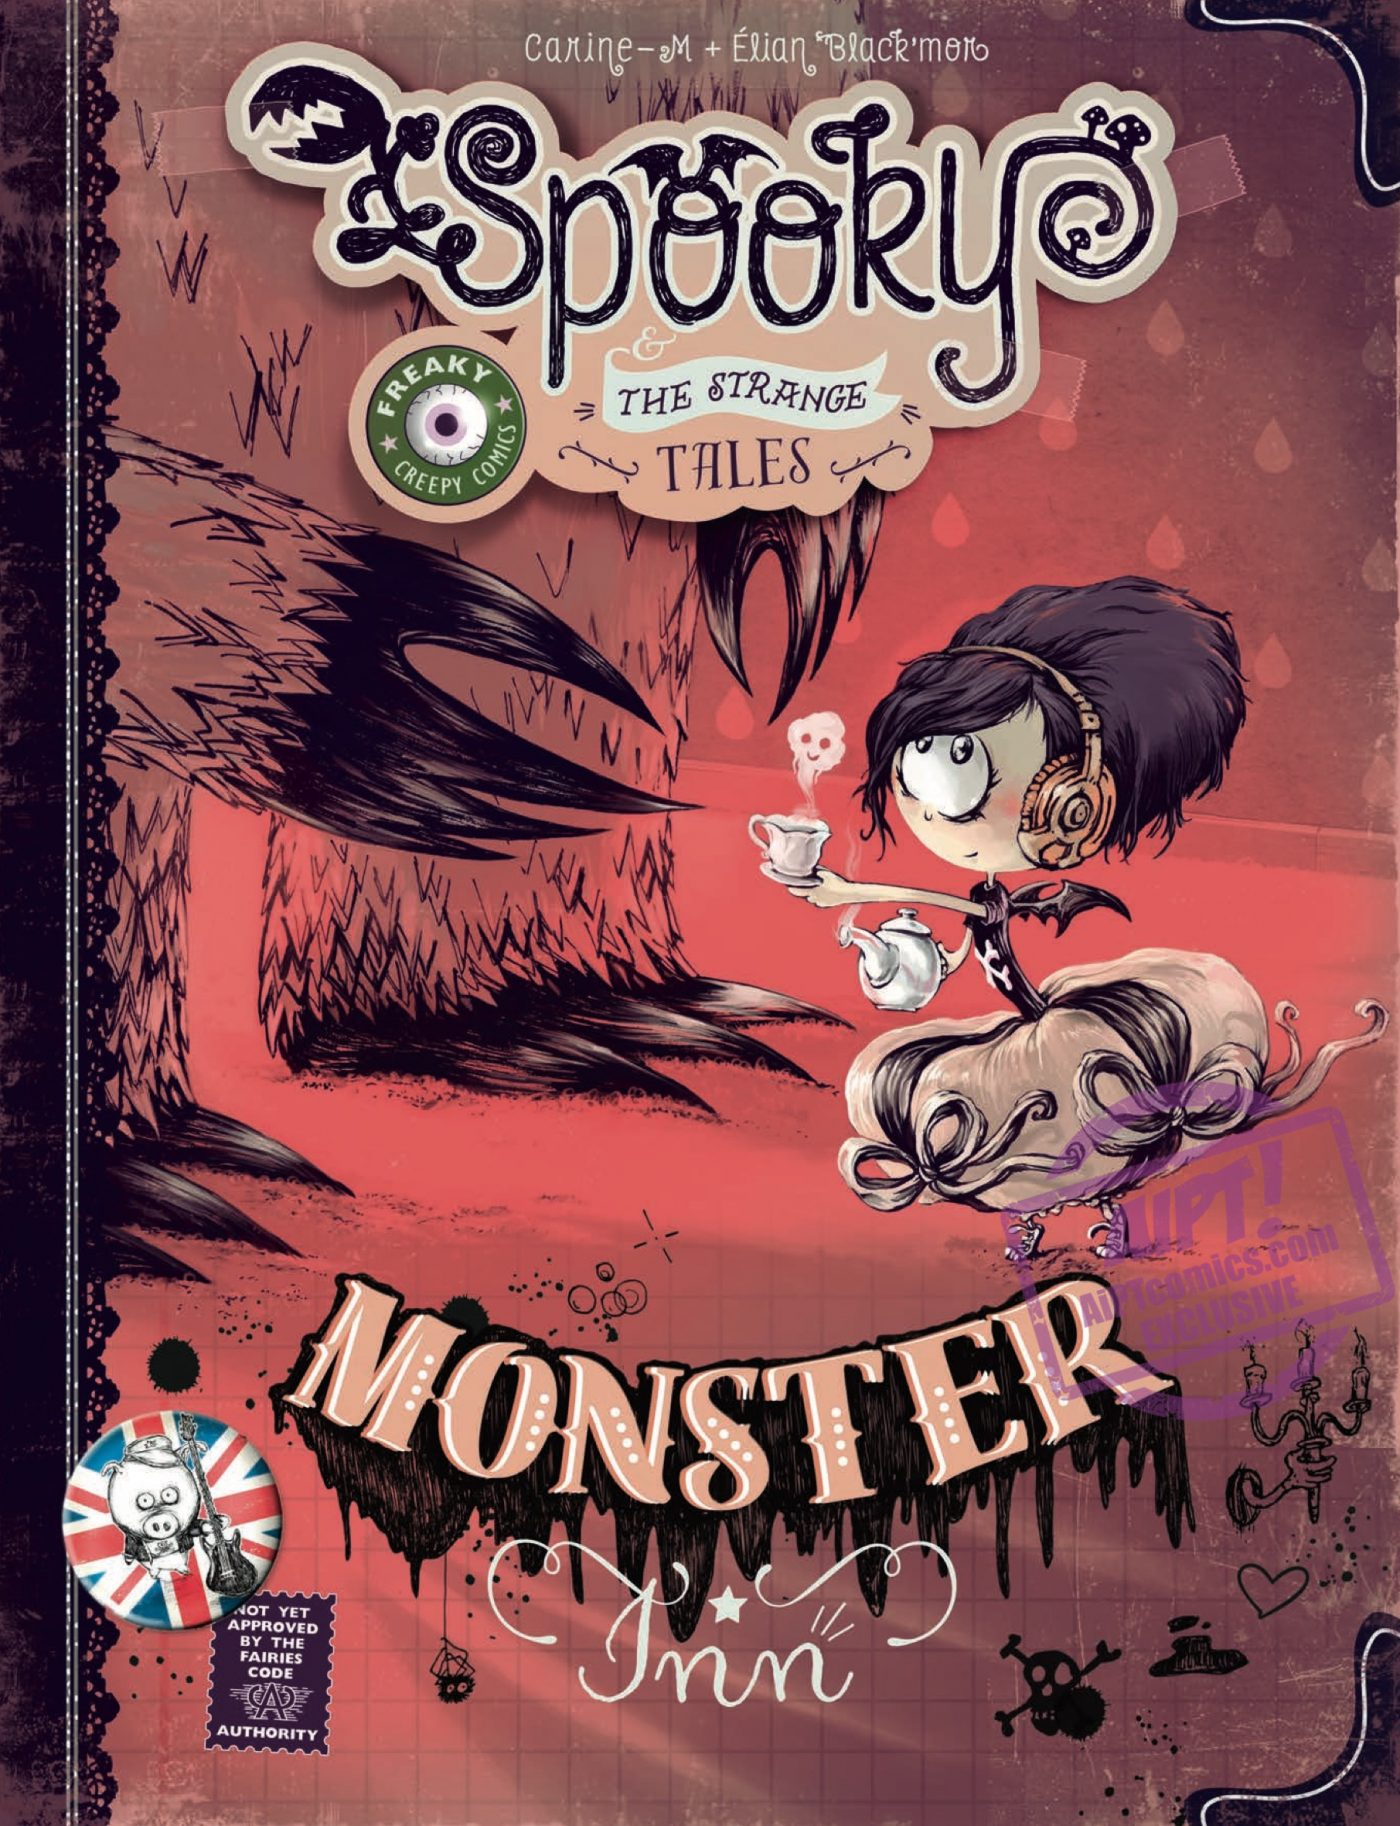 [EXCLUSIVE] IDW Preview: Spooky & Strange Tales Monster Inn HC